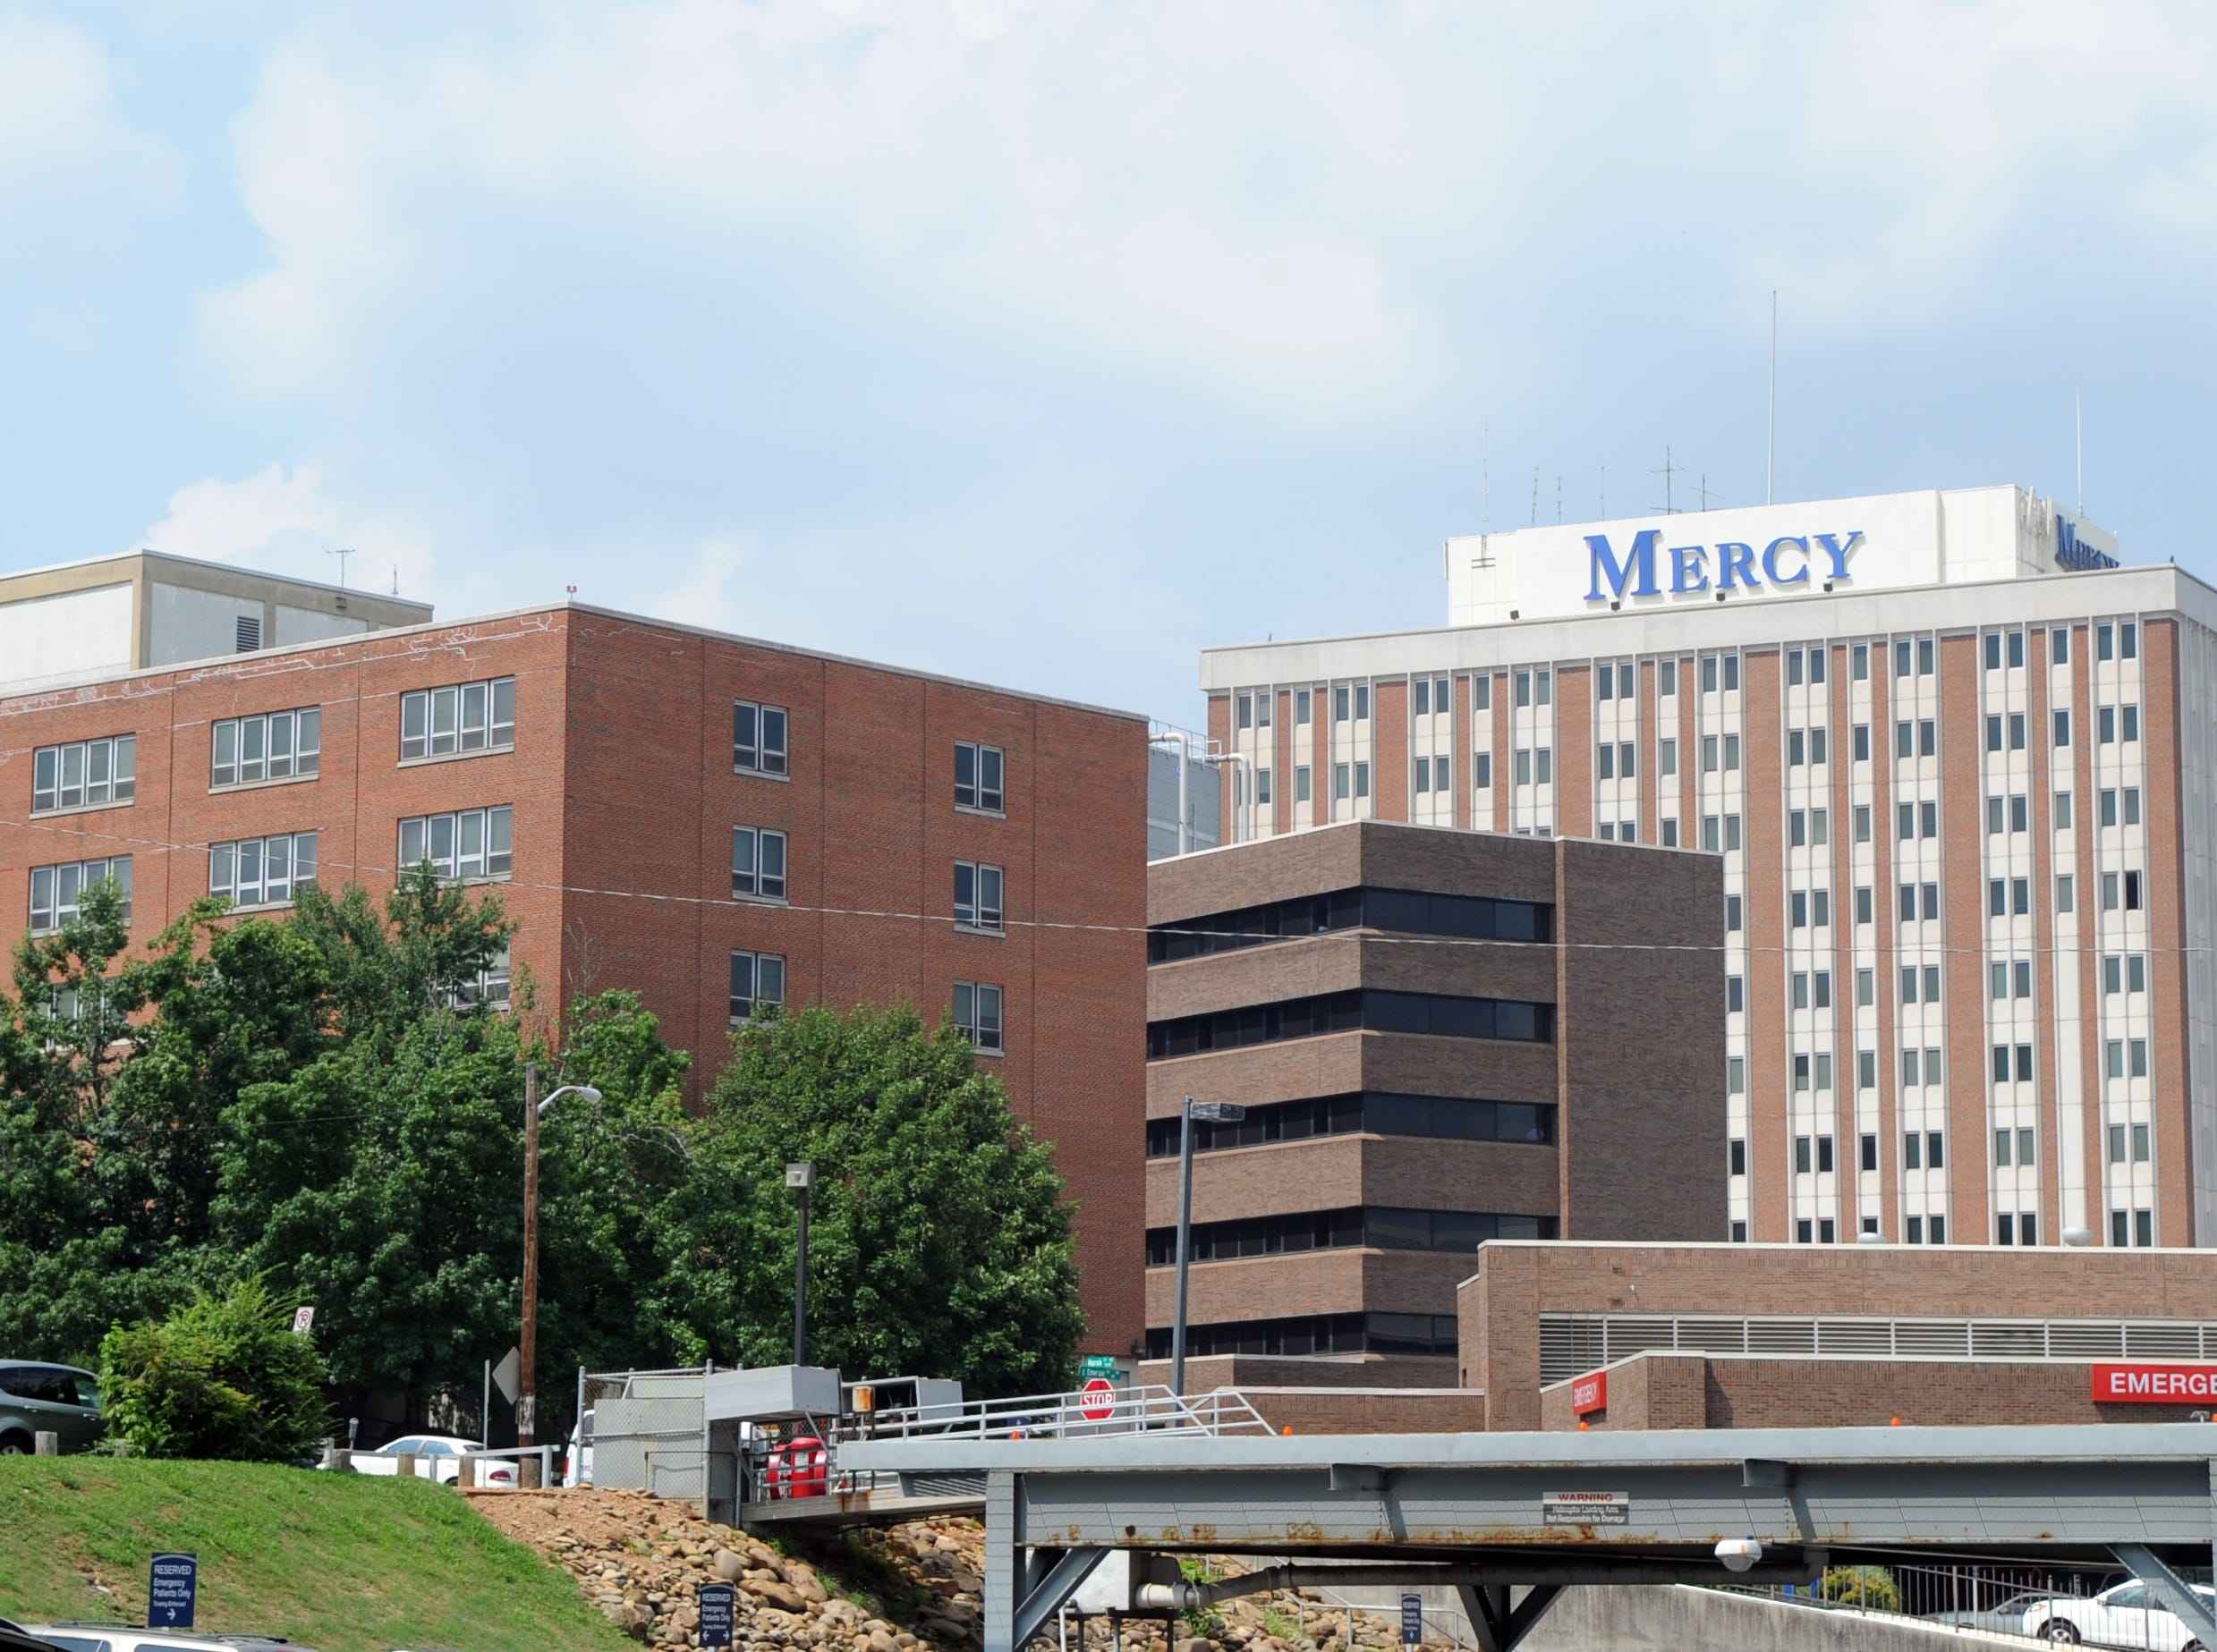 Mercy Medical Center St. Mary's in North Knoxville is seen Tuesday, July 5, 2011.  Health Management Associates has agreed to buy Mercy Health Partners for $525 million dollars pending approval from federal regulators and the Vatican.  The deal is expected to be completed by Oct. 1.